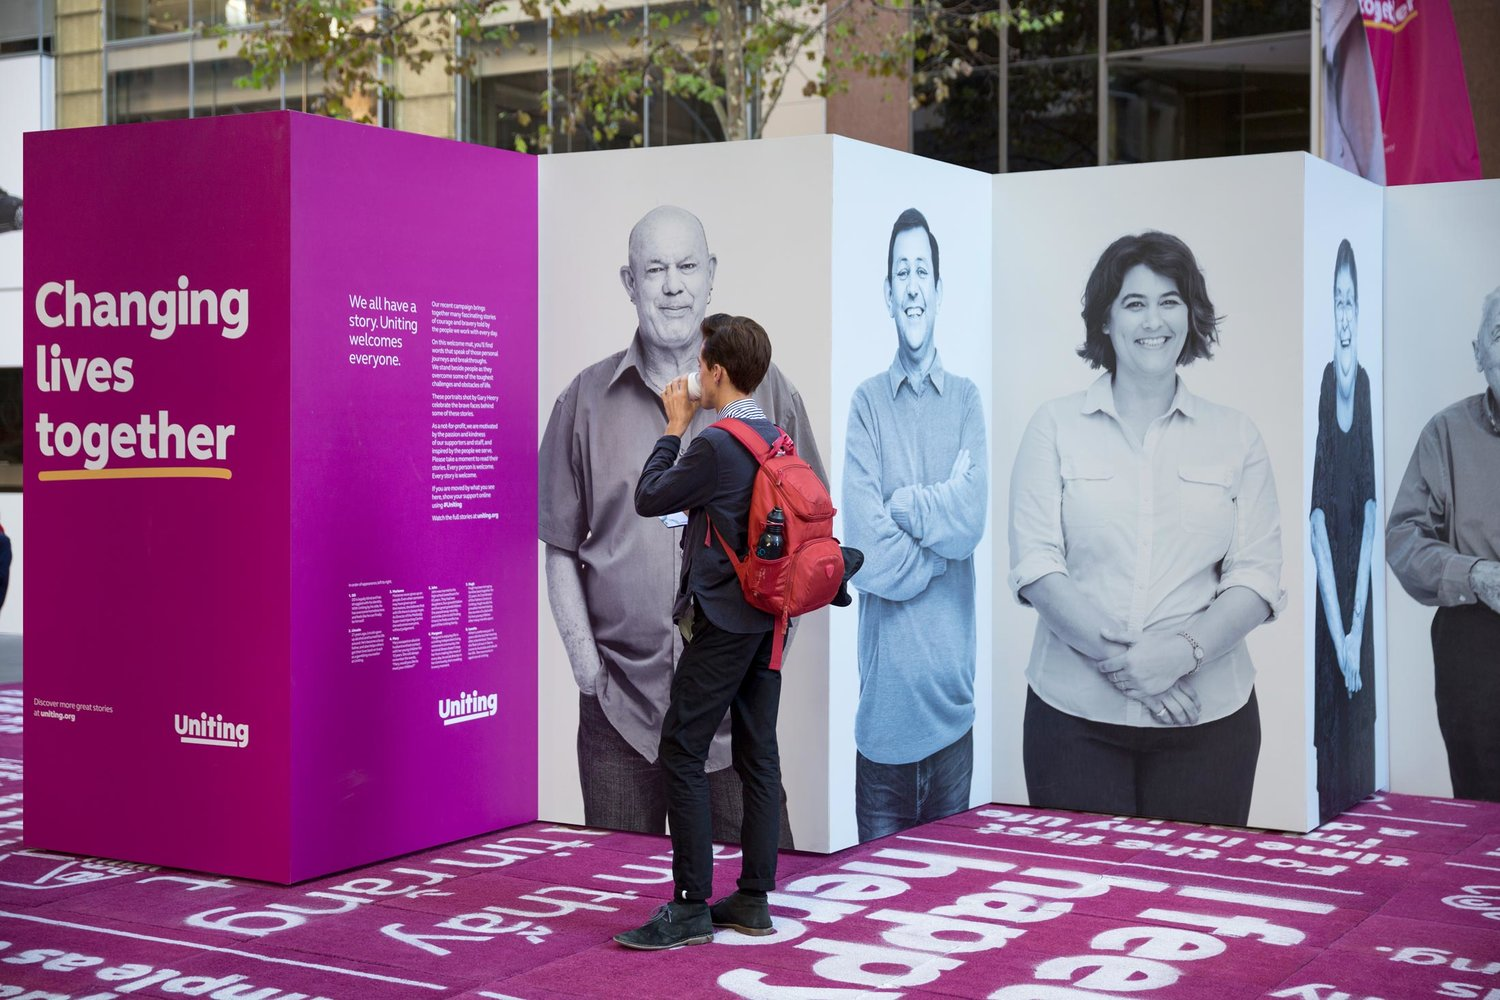 Uniting-Martin-Place-Exhibition.jpg